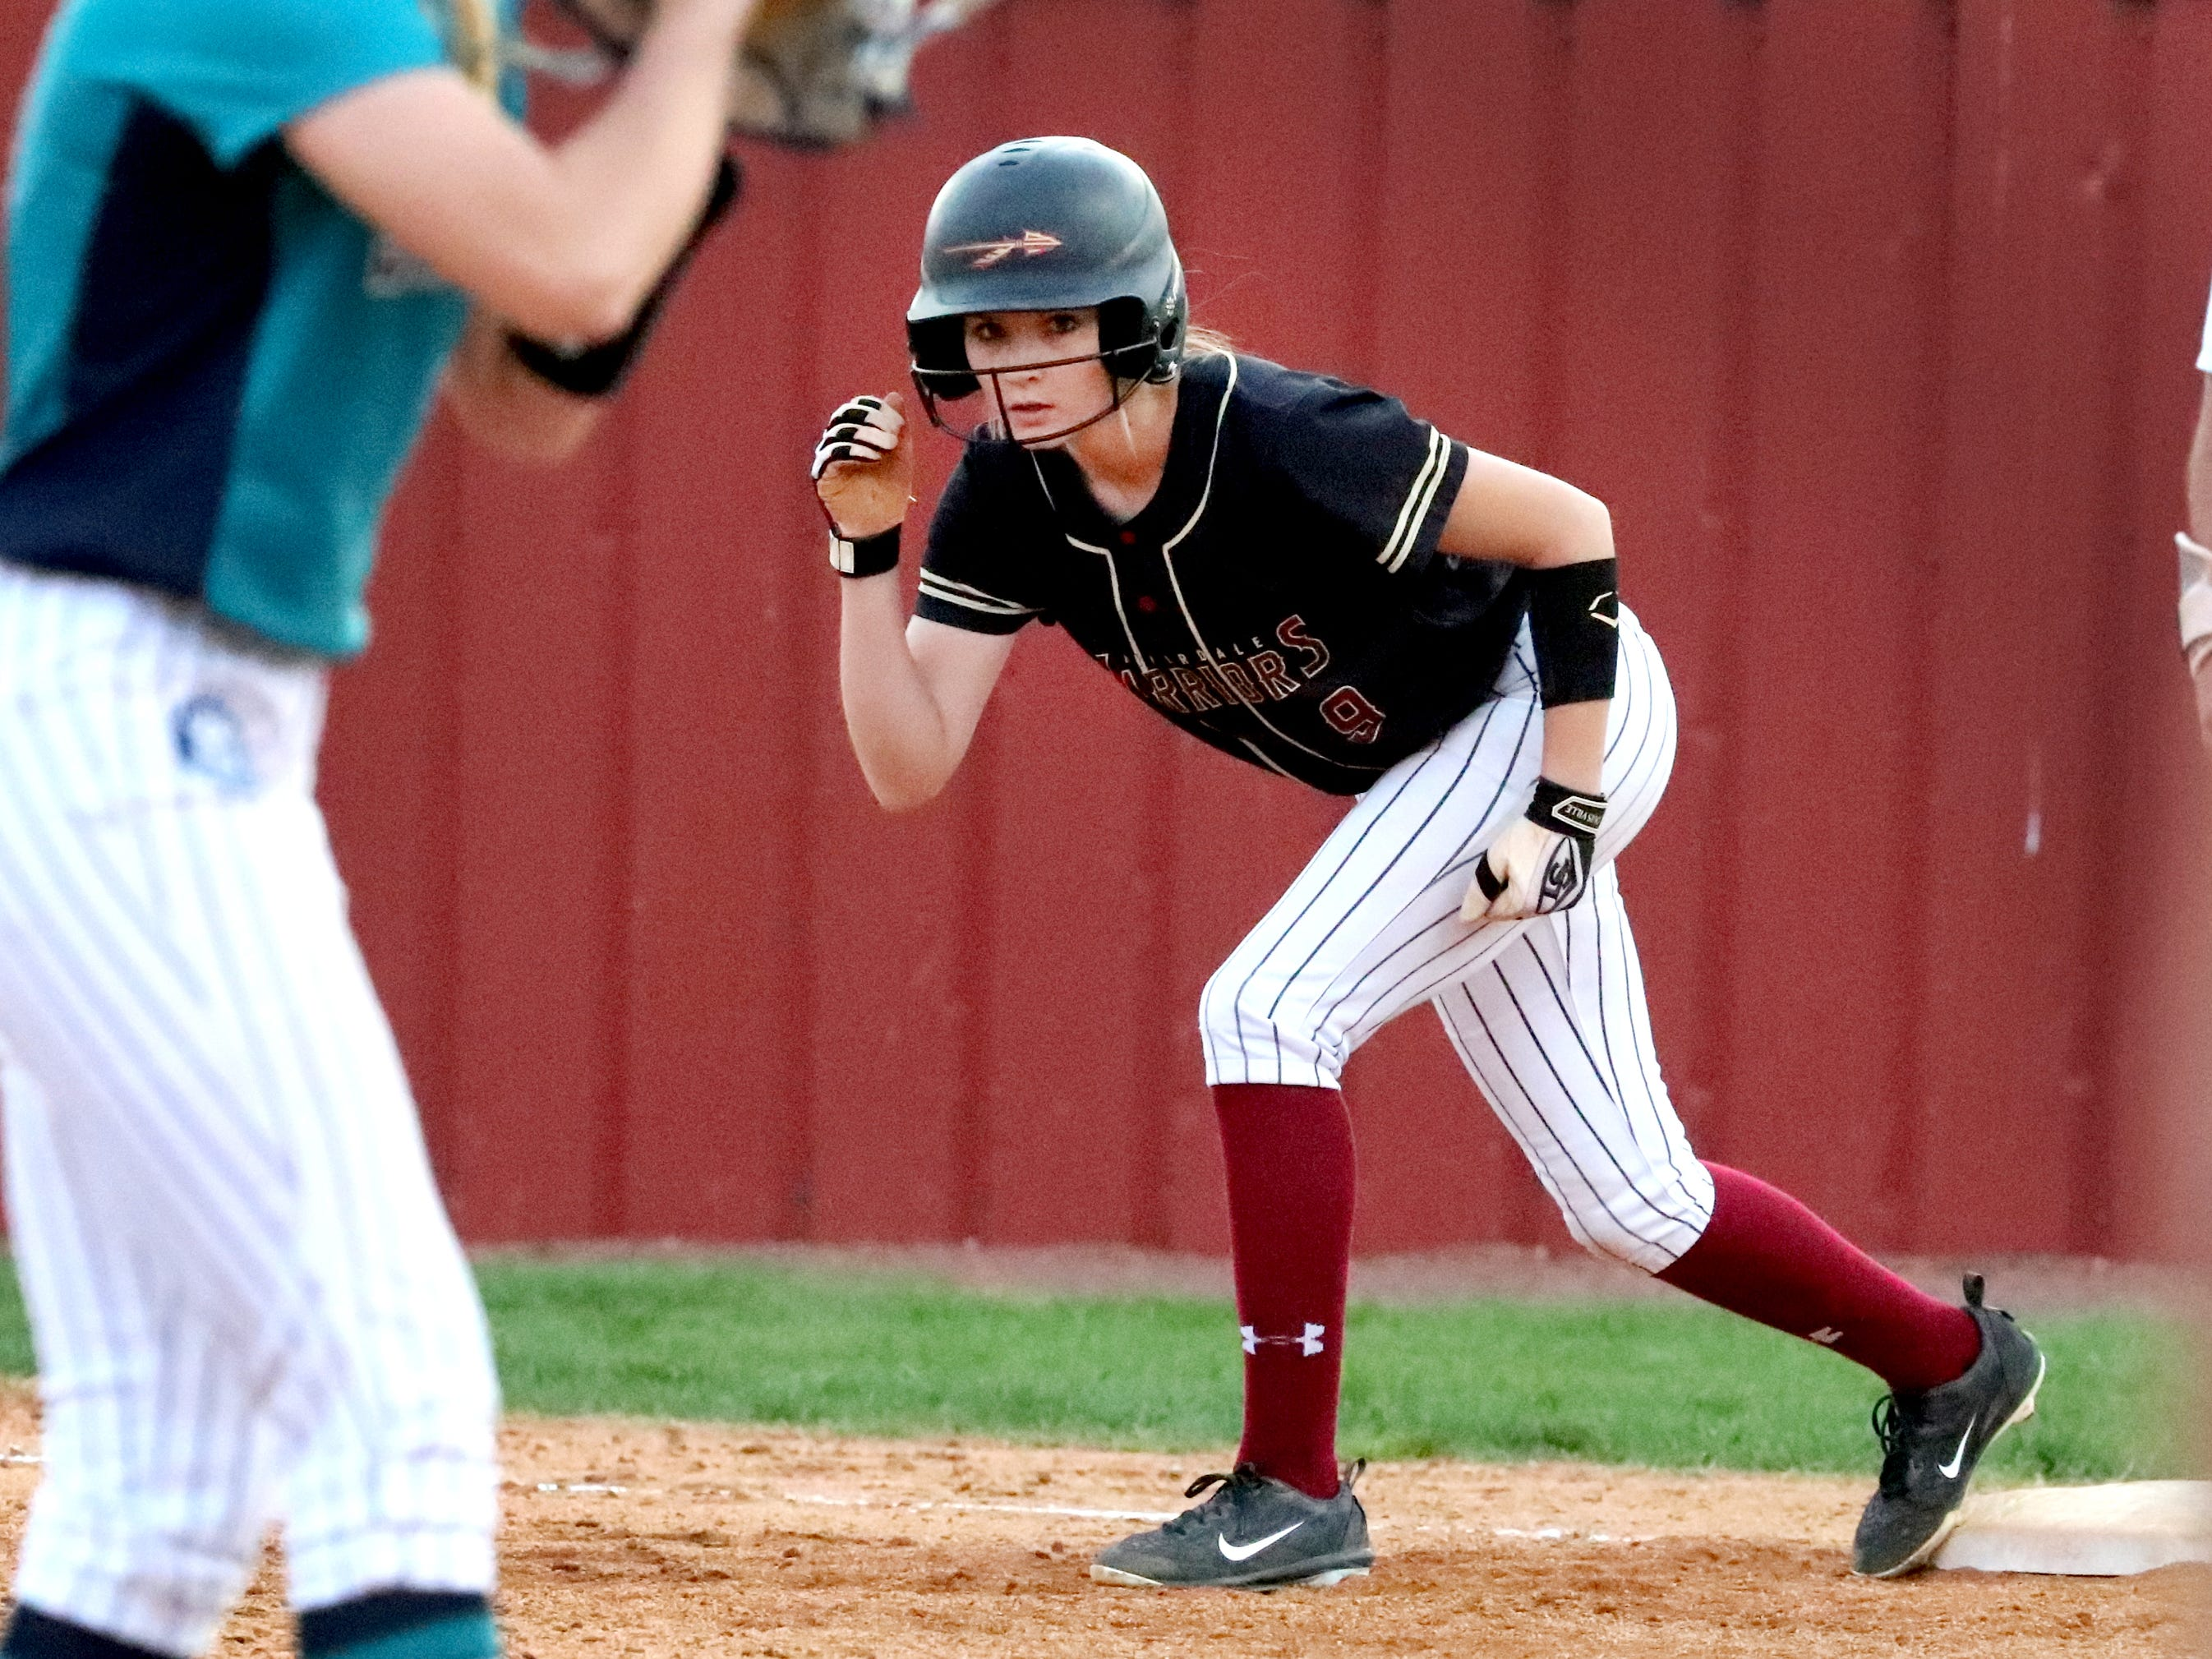 Riverdale's Breanna Bailey (9) watches the pitch from first base as she gets ready to run during the game against Siegel on Thursday April 11, 2019, at Riverdale.